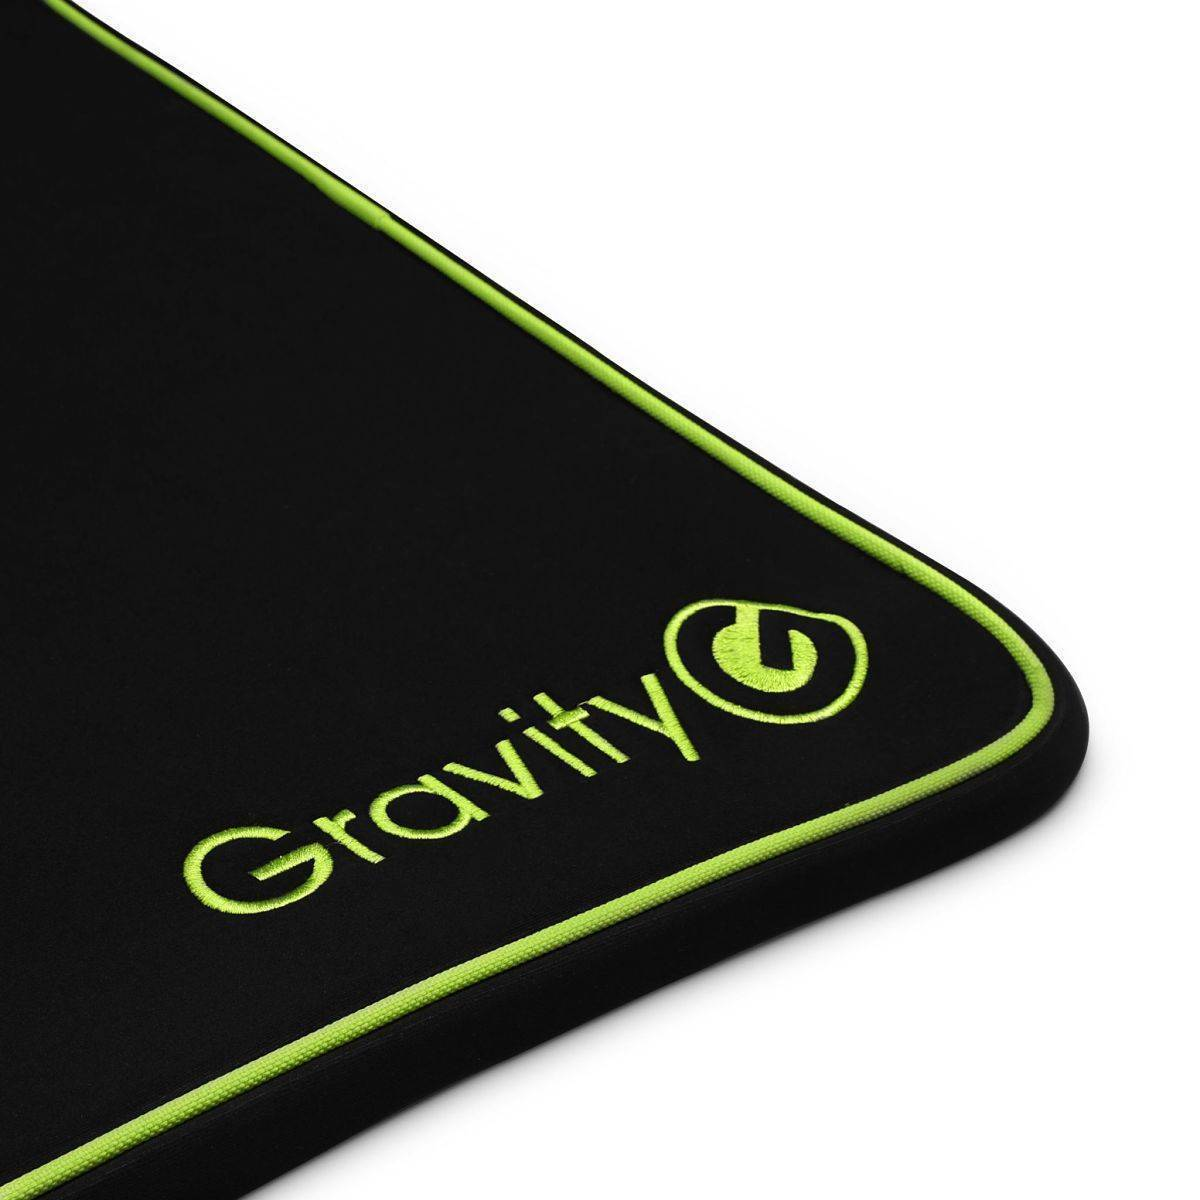 Funda Thinline para Teclado o atril Gravity